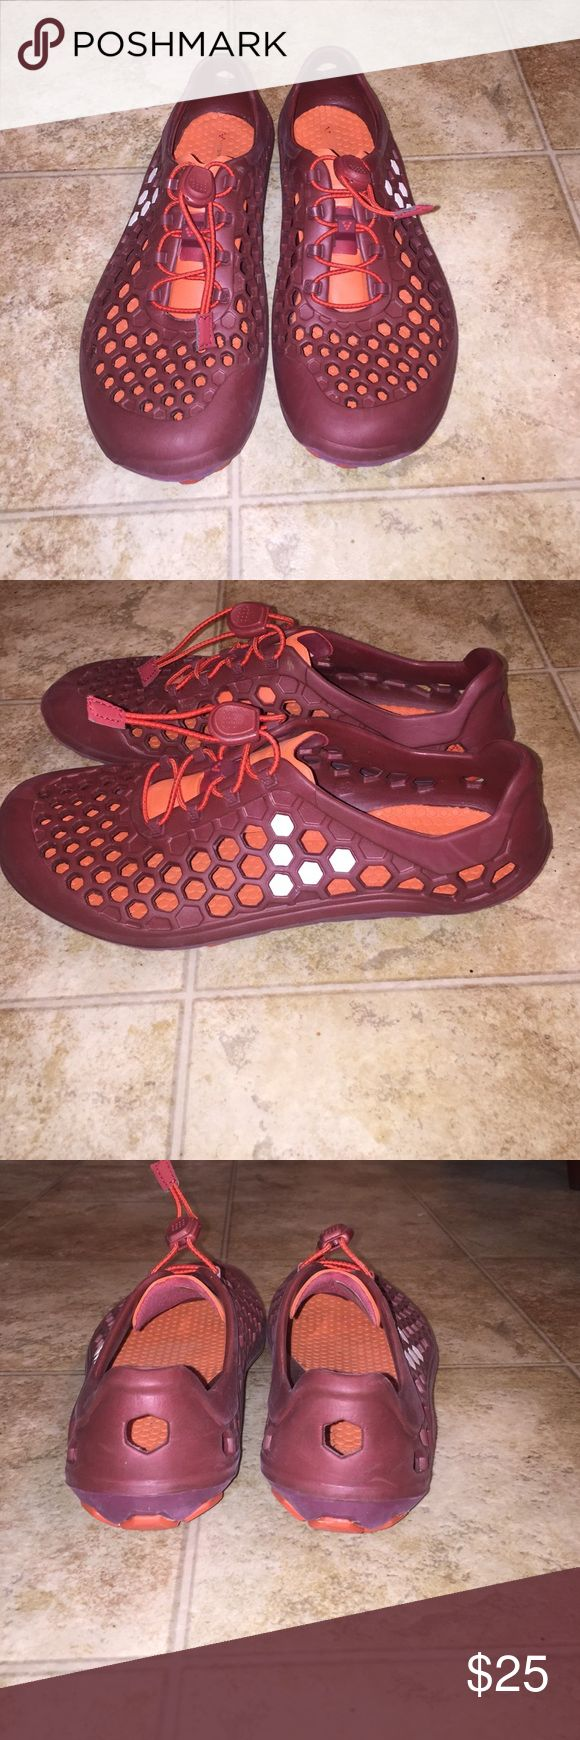 Vivobarefoot Wet/Dry Shoes Must haves for your next boating trip or tropical vacation! Move easily between wet and dry environments. These have only been worn once for a trip to Costa Rica and they were fabulous! I got another pair in a brighter color! Vivobarefoot Shoes Sandals